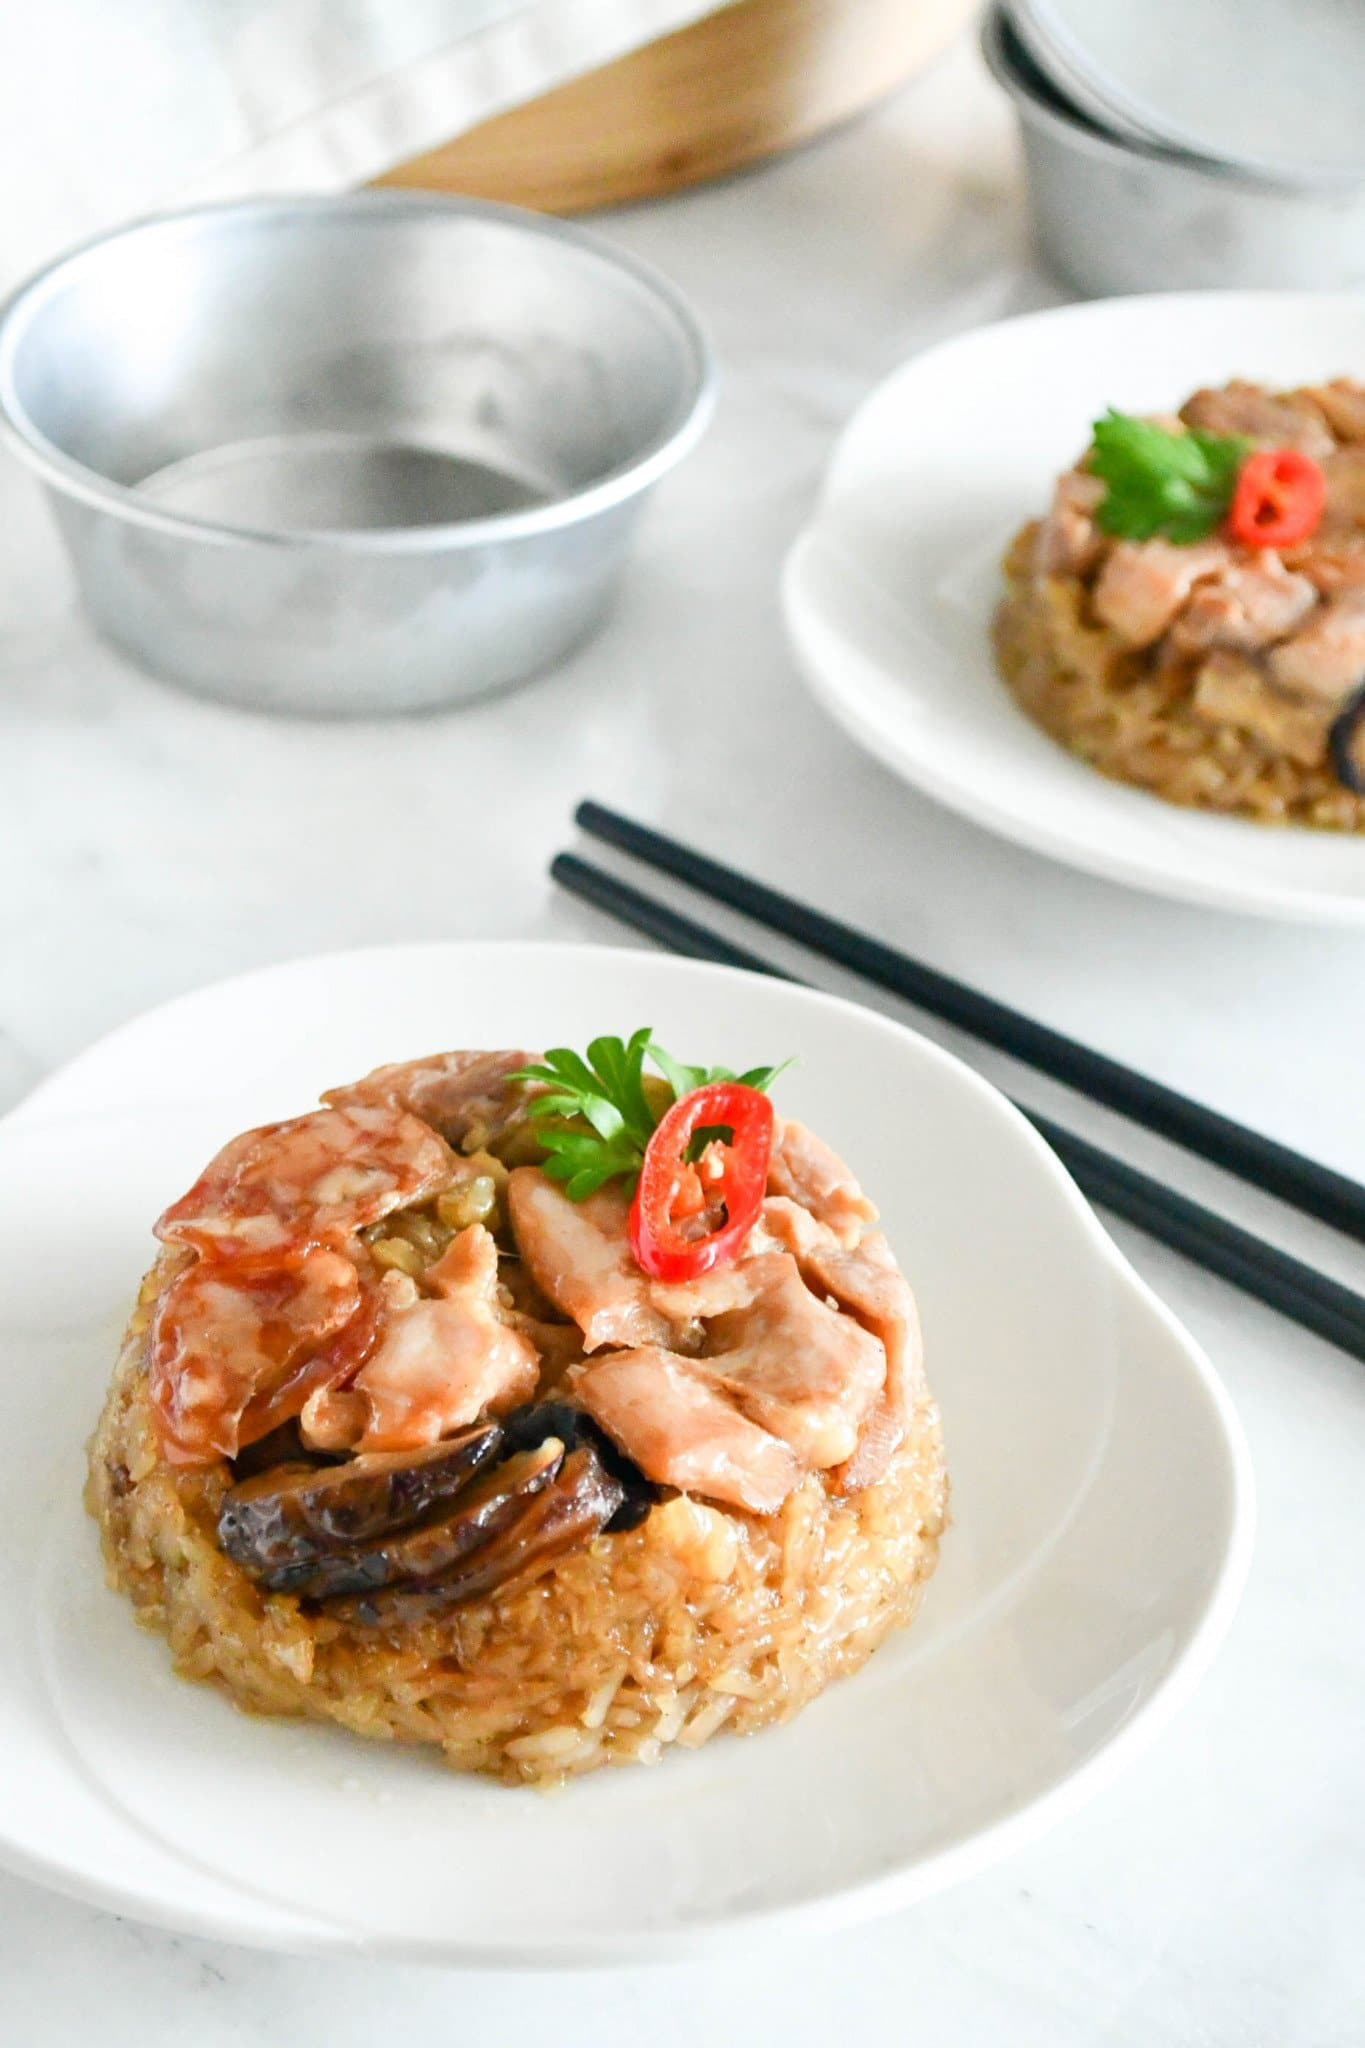 loh mai kai (steamed glutinuos rice with chicken)